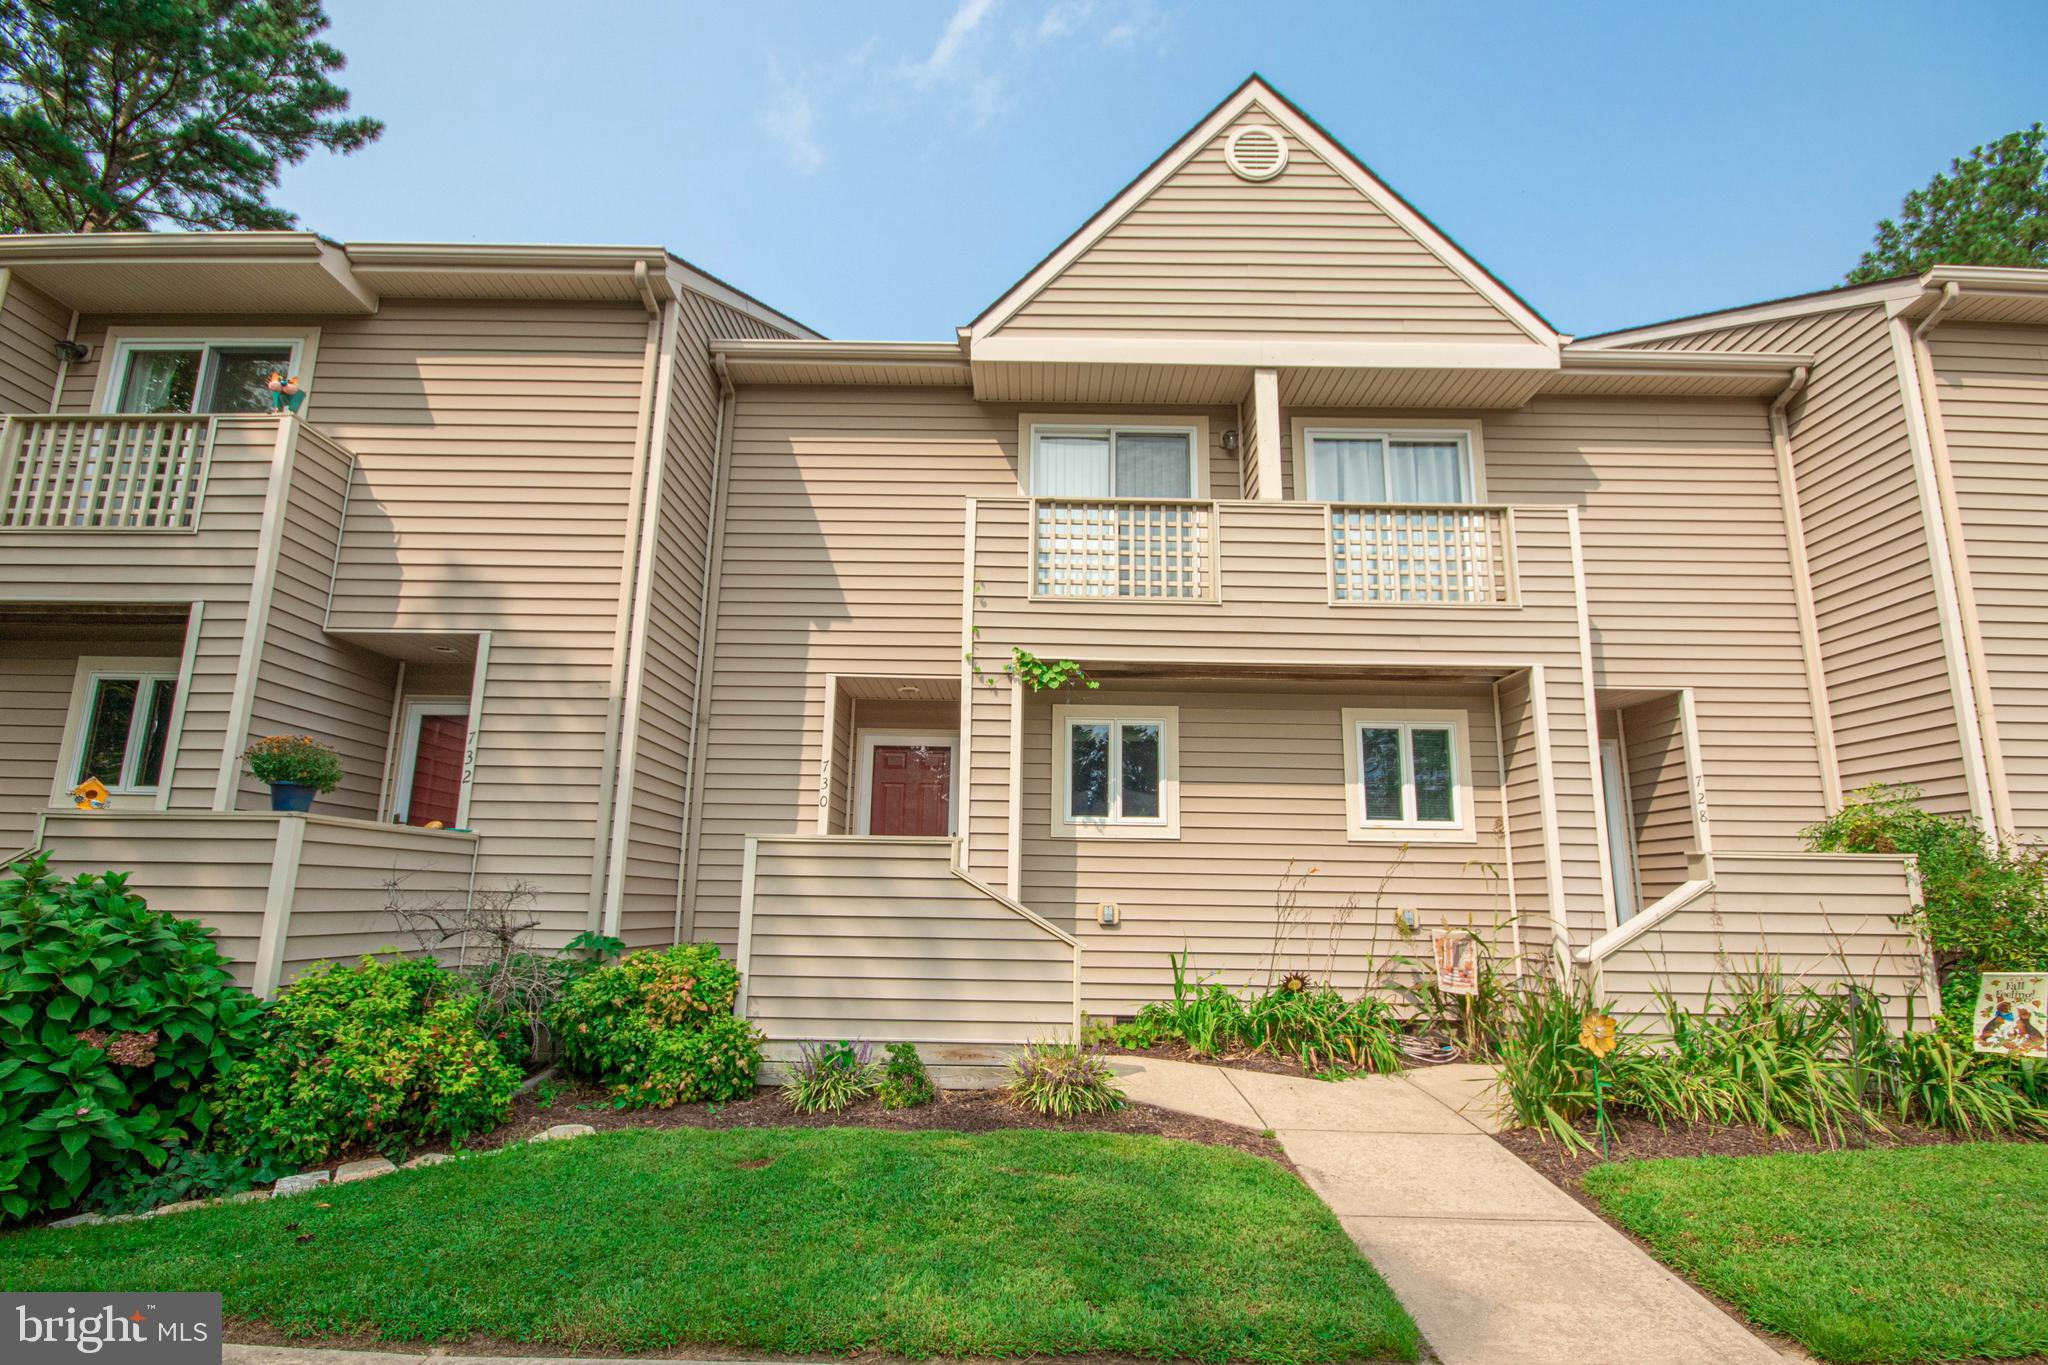 New carpet and Freshly painted 2 bedroom/2 1/2 bath condo unit in the Glade, Tucked away off of Nort